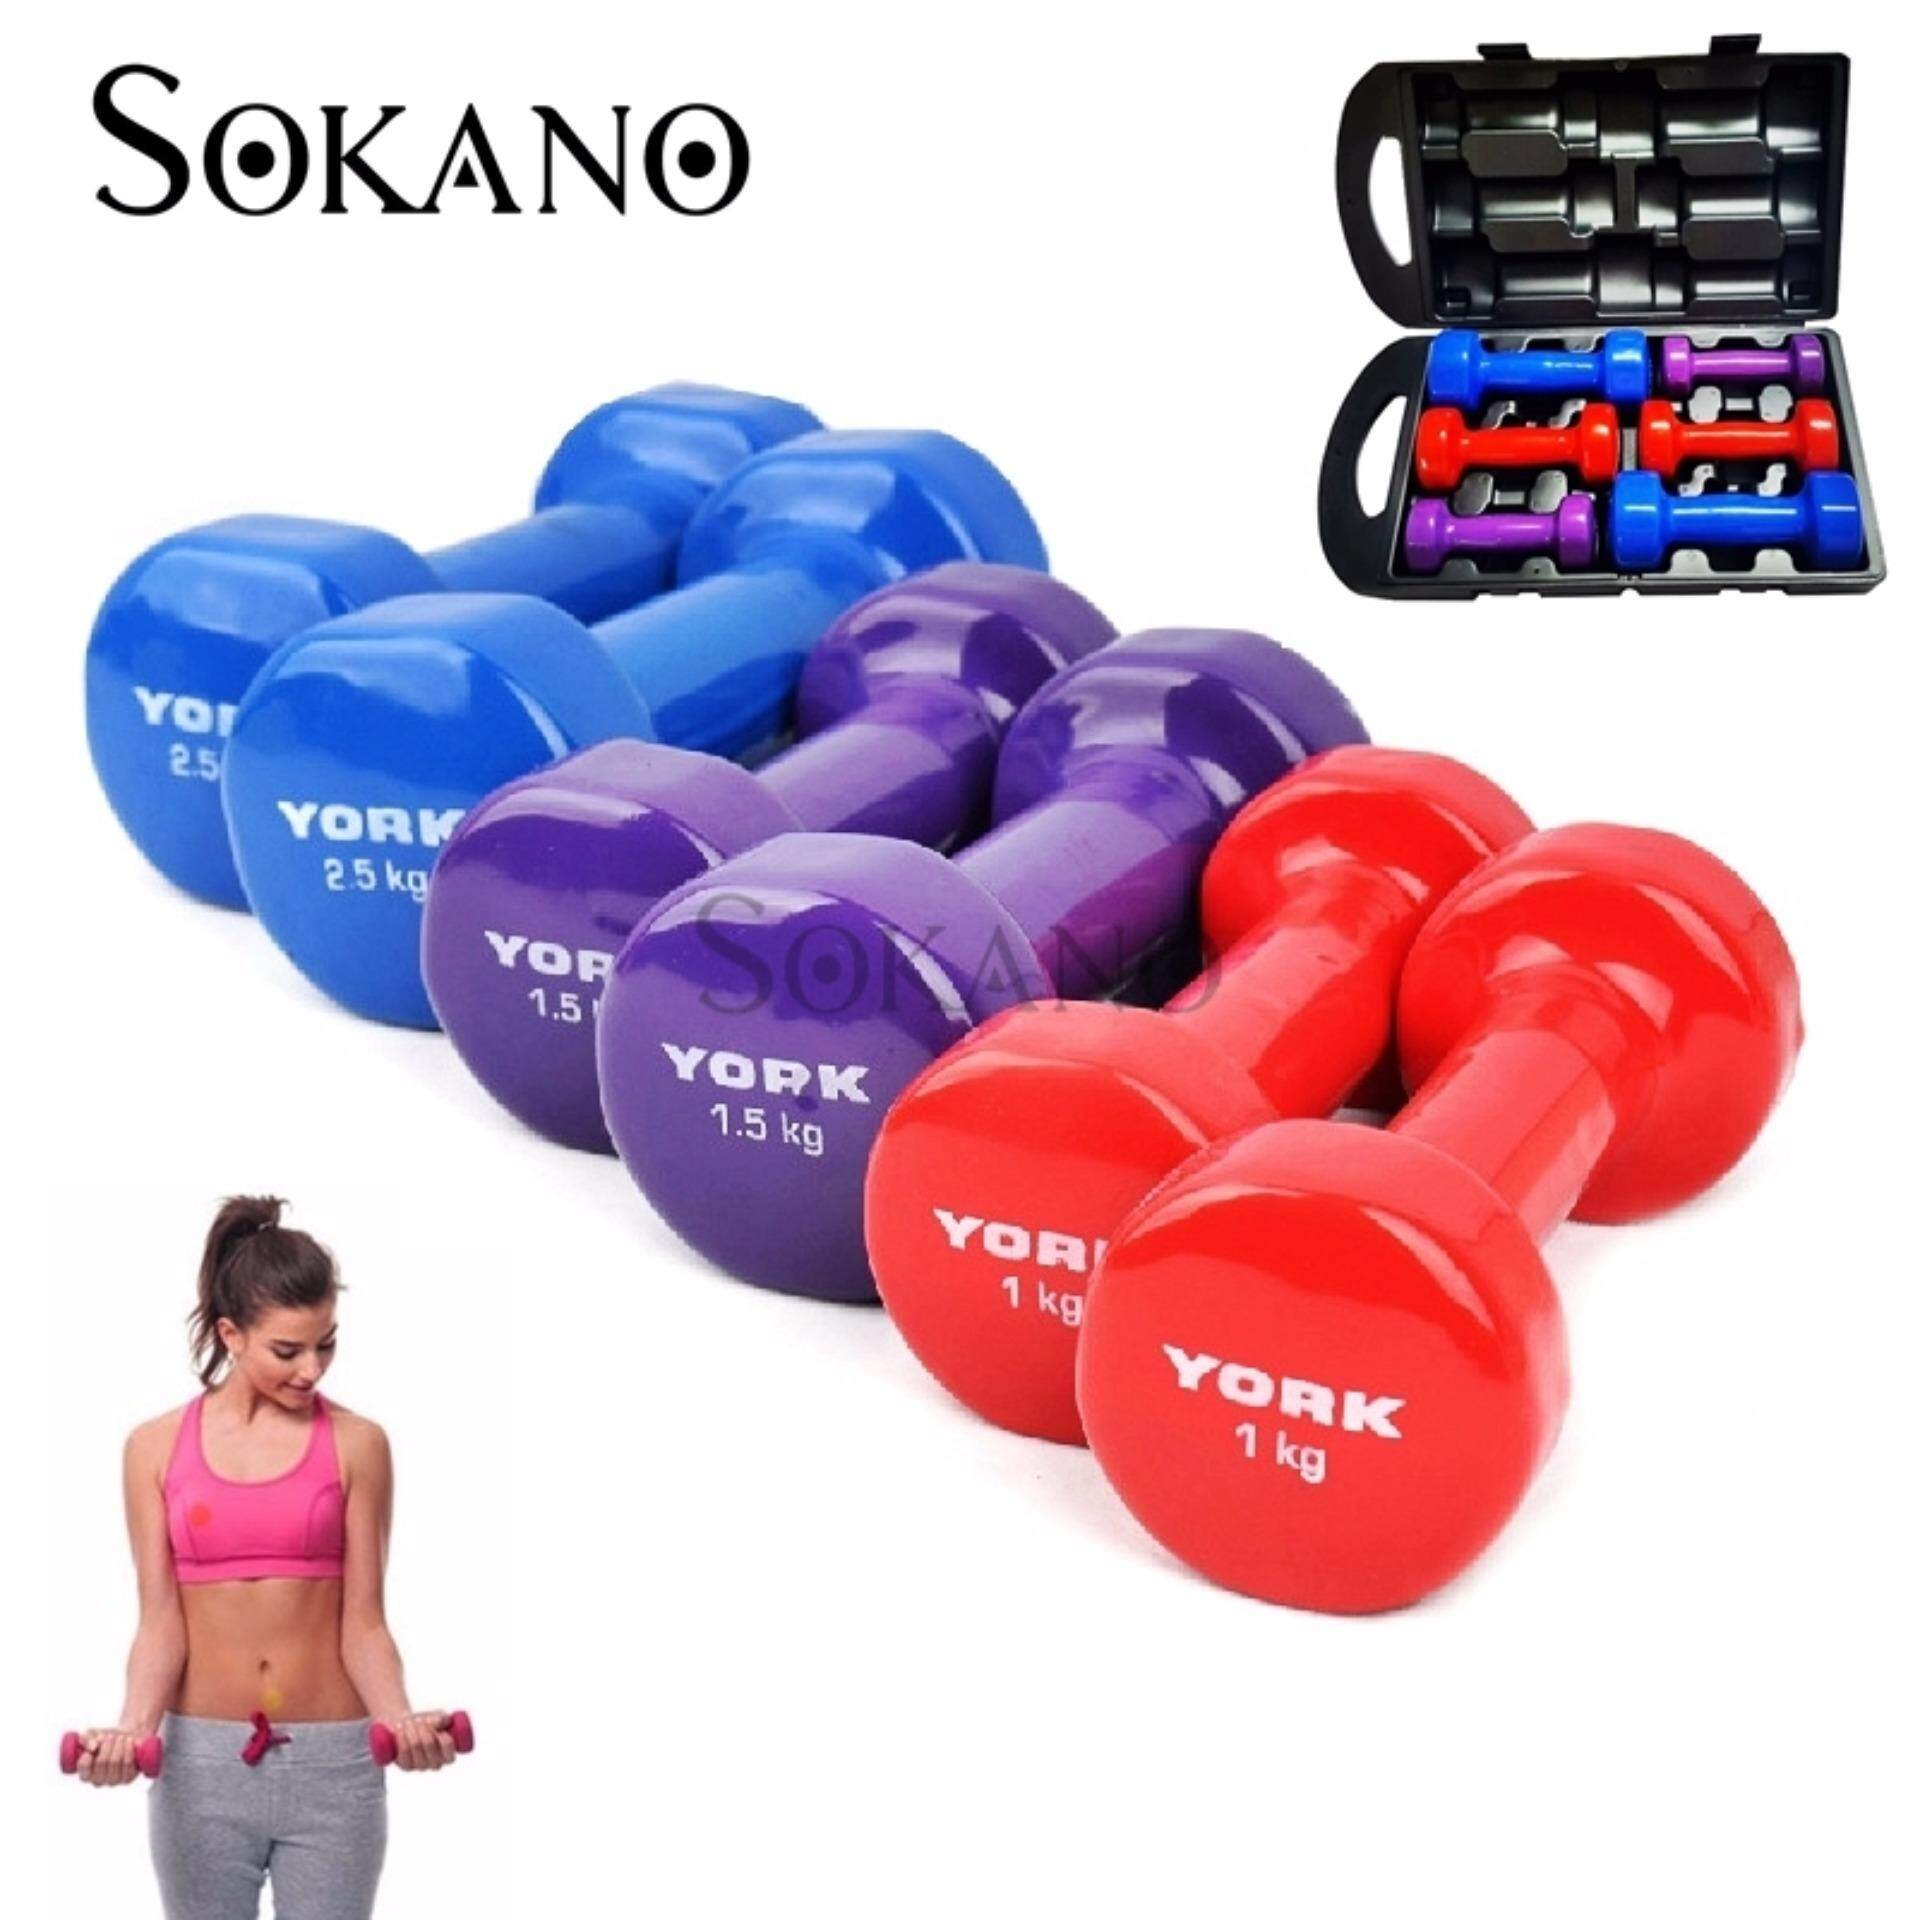 SOKANO York Fitness Weight Training Vinyl Coated Dumbbell Set with Storage Box (2.5kg, 1.5kg and 1kg) image on snachetto.com